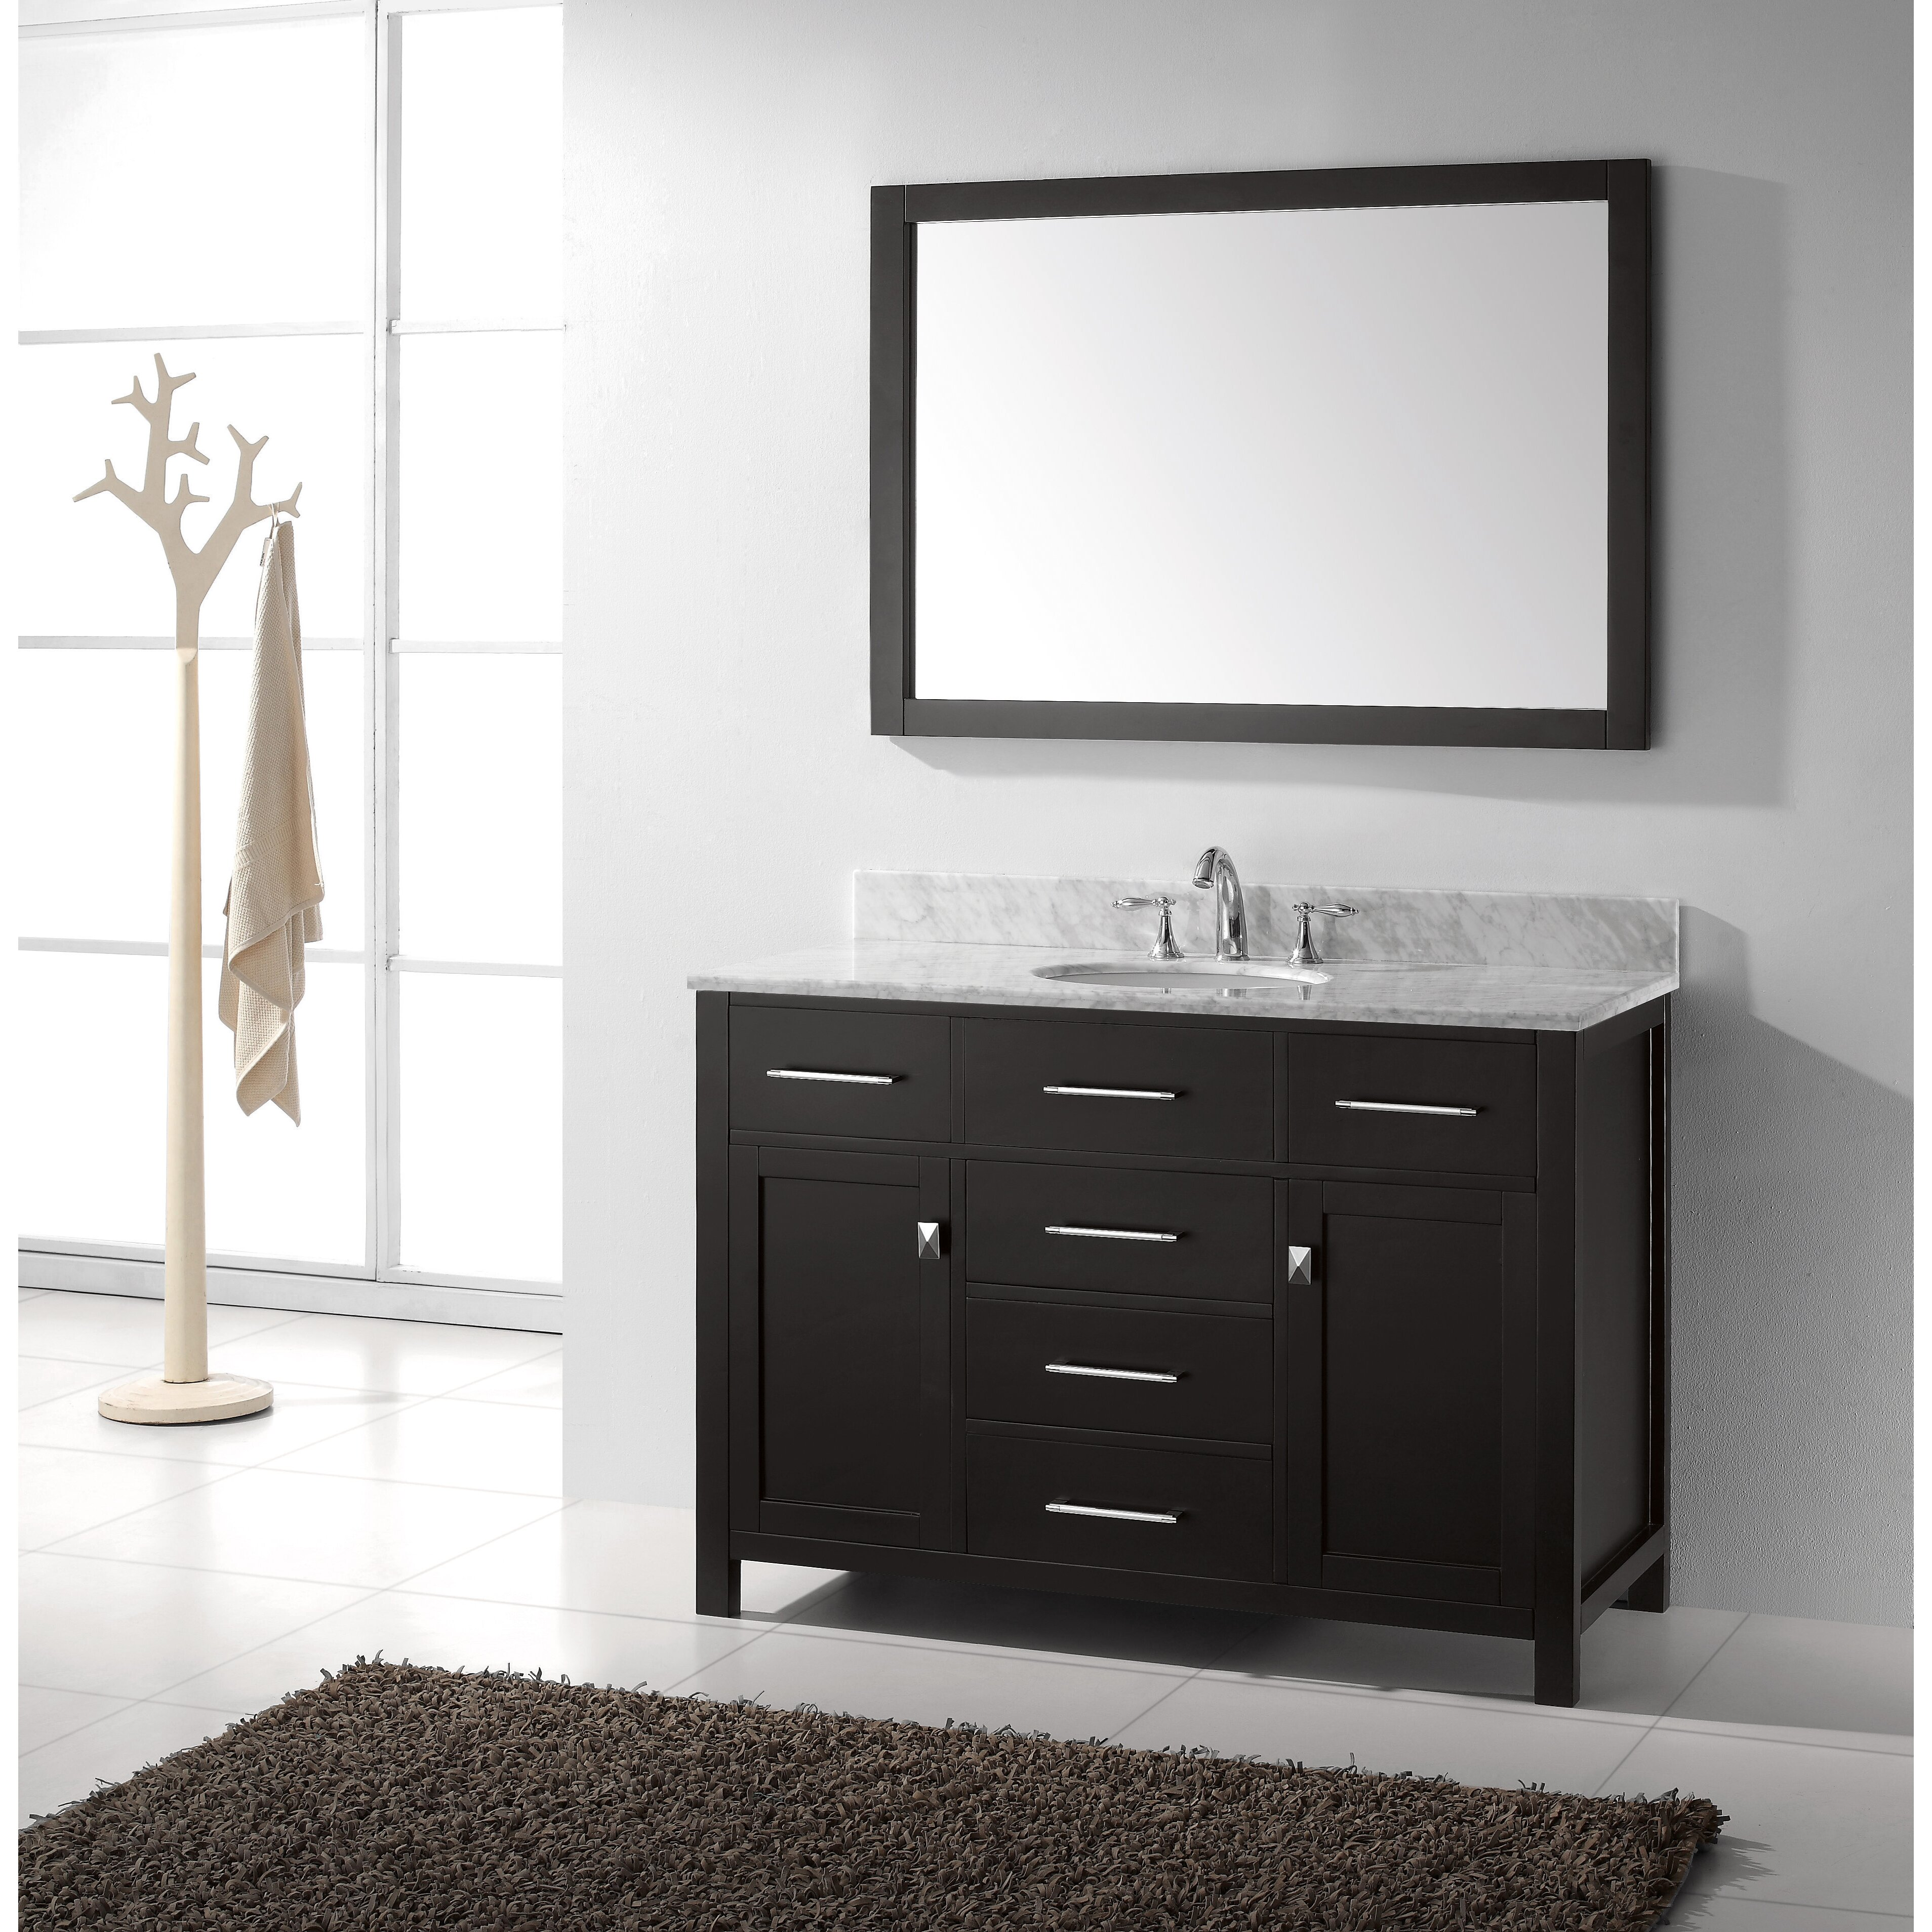 Vanity Tile Top : Virtu caroline quot single bathroom vanity set with carrara